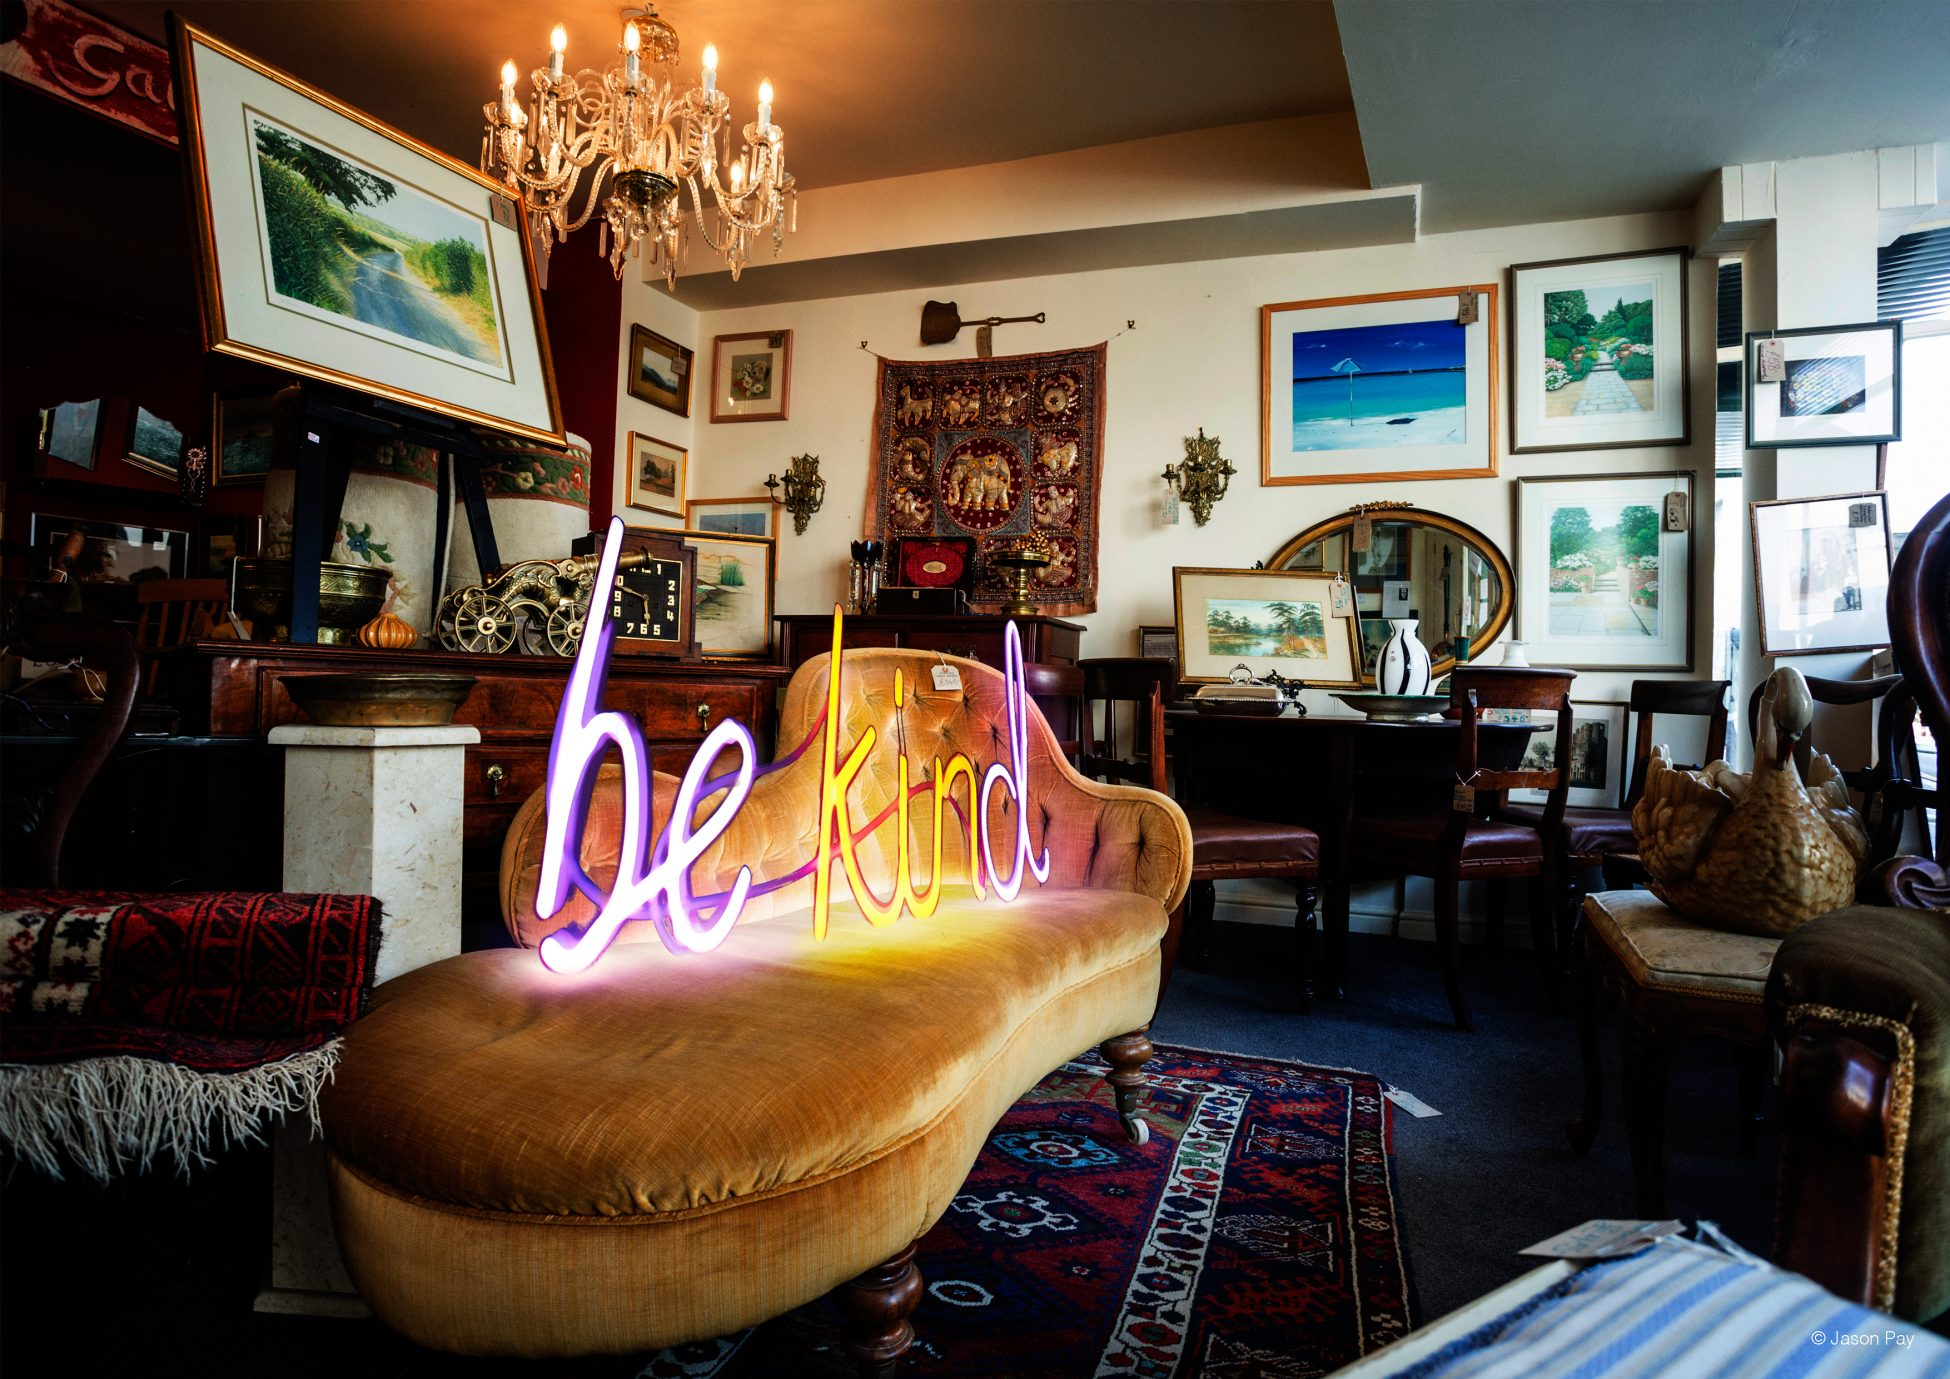 Digital artwork showing a photo of a room with various chairs, rugs, framed paintings, pieces of furniture and lights. On a yellow chaise longue in the centre of the room is a neon sign spelling out the words 'be kind' in pink and yellow light.